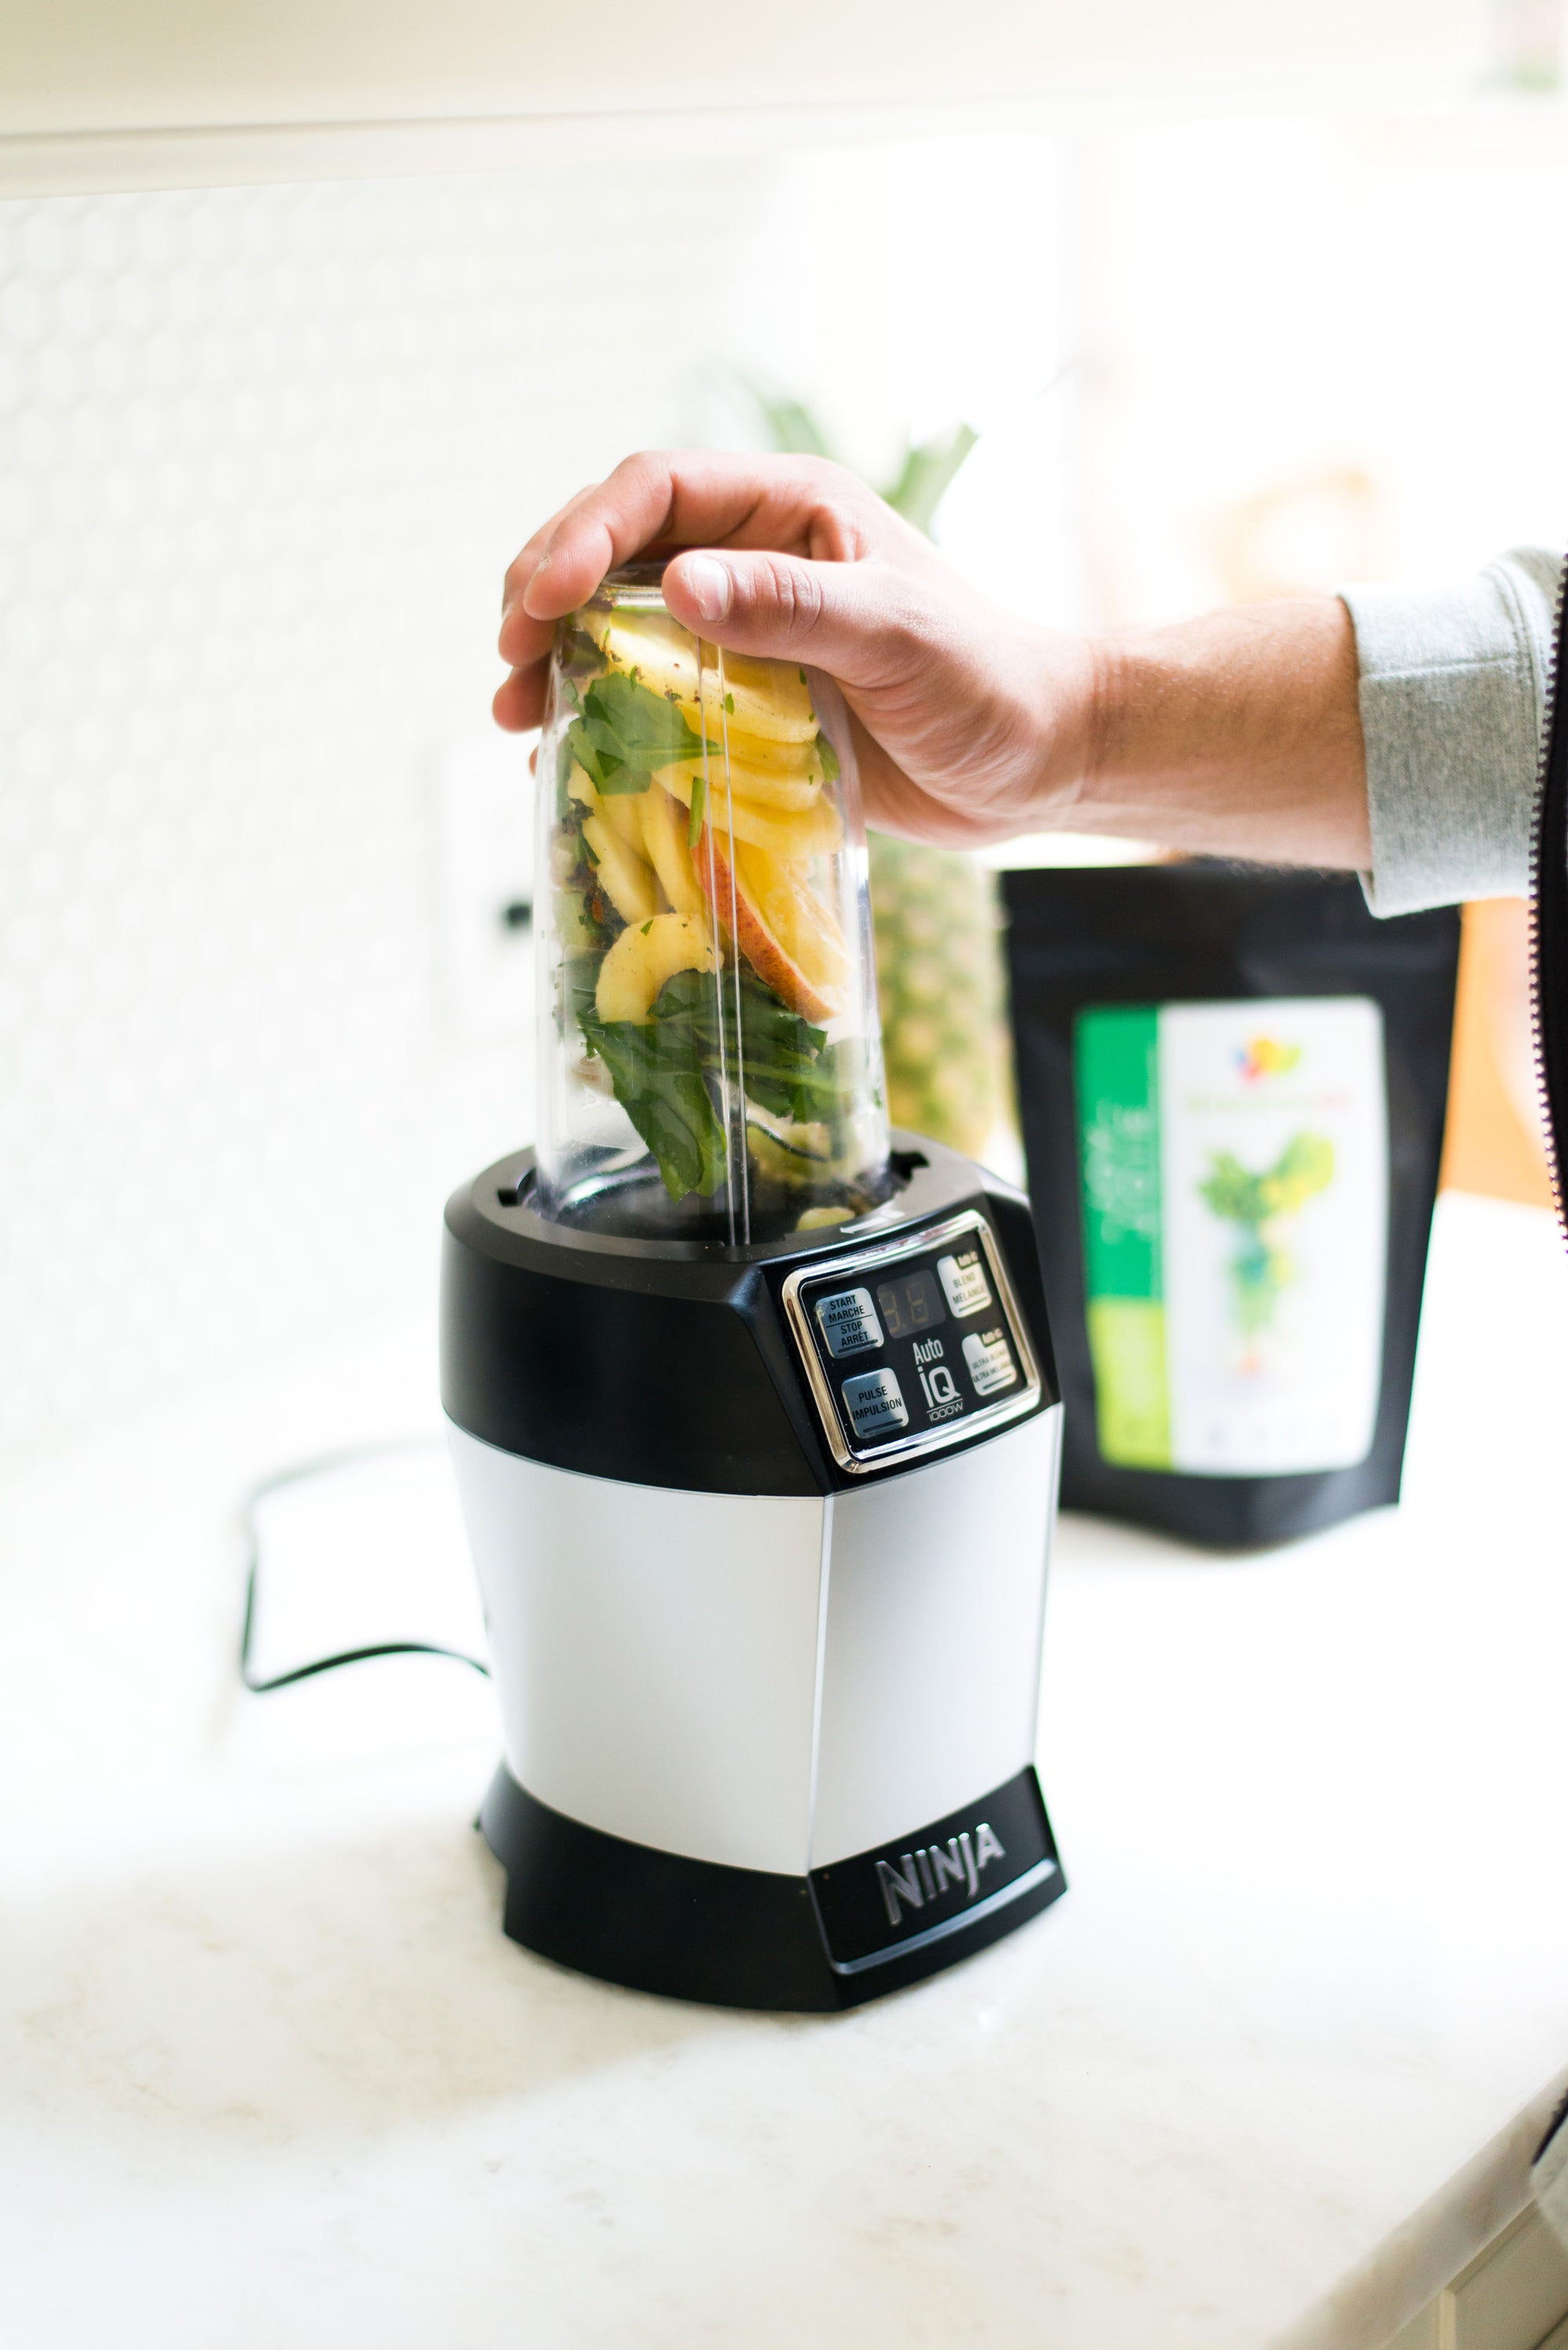 Why blending is better than juicing